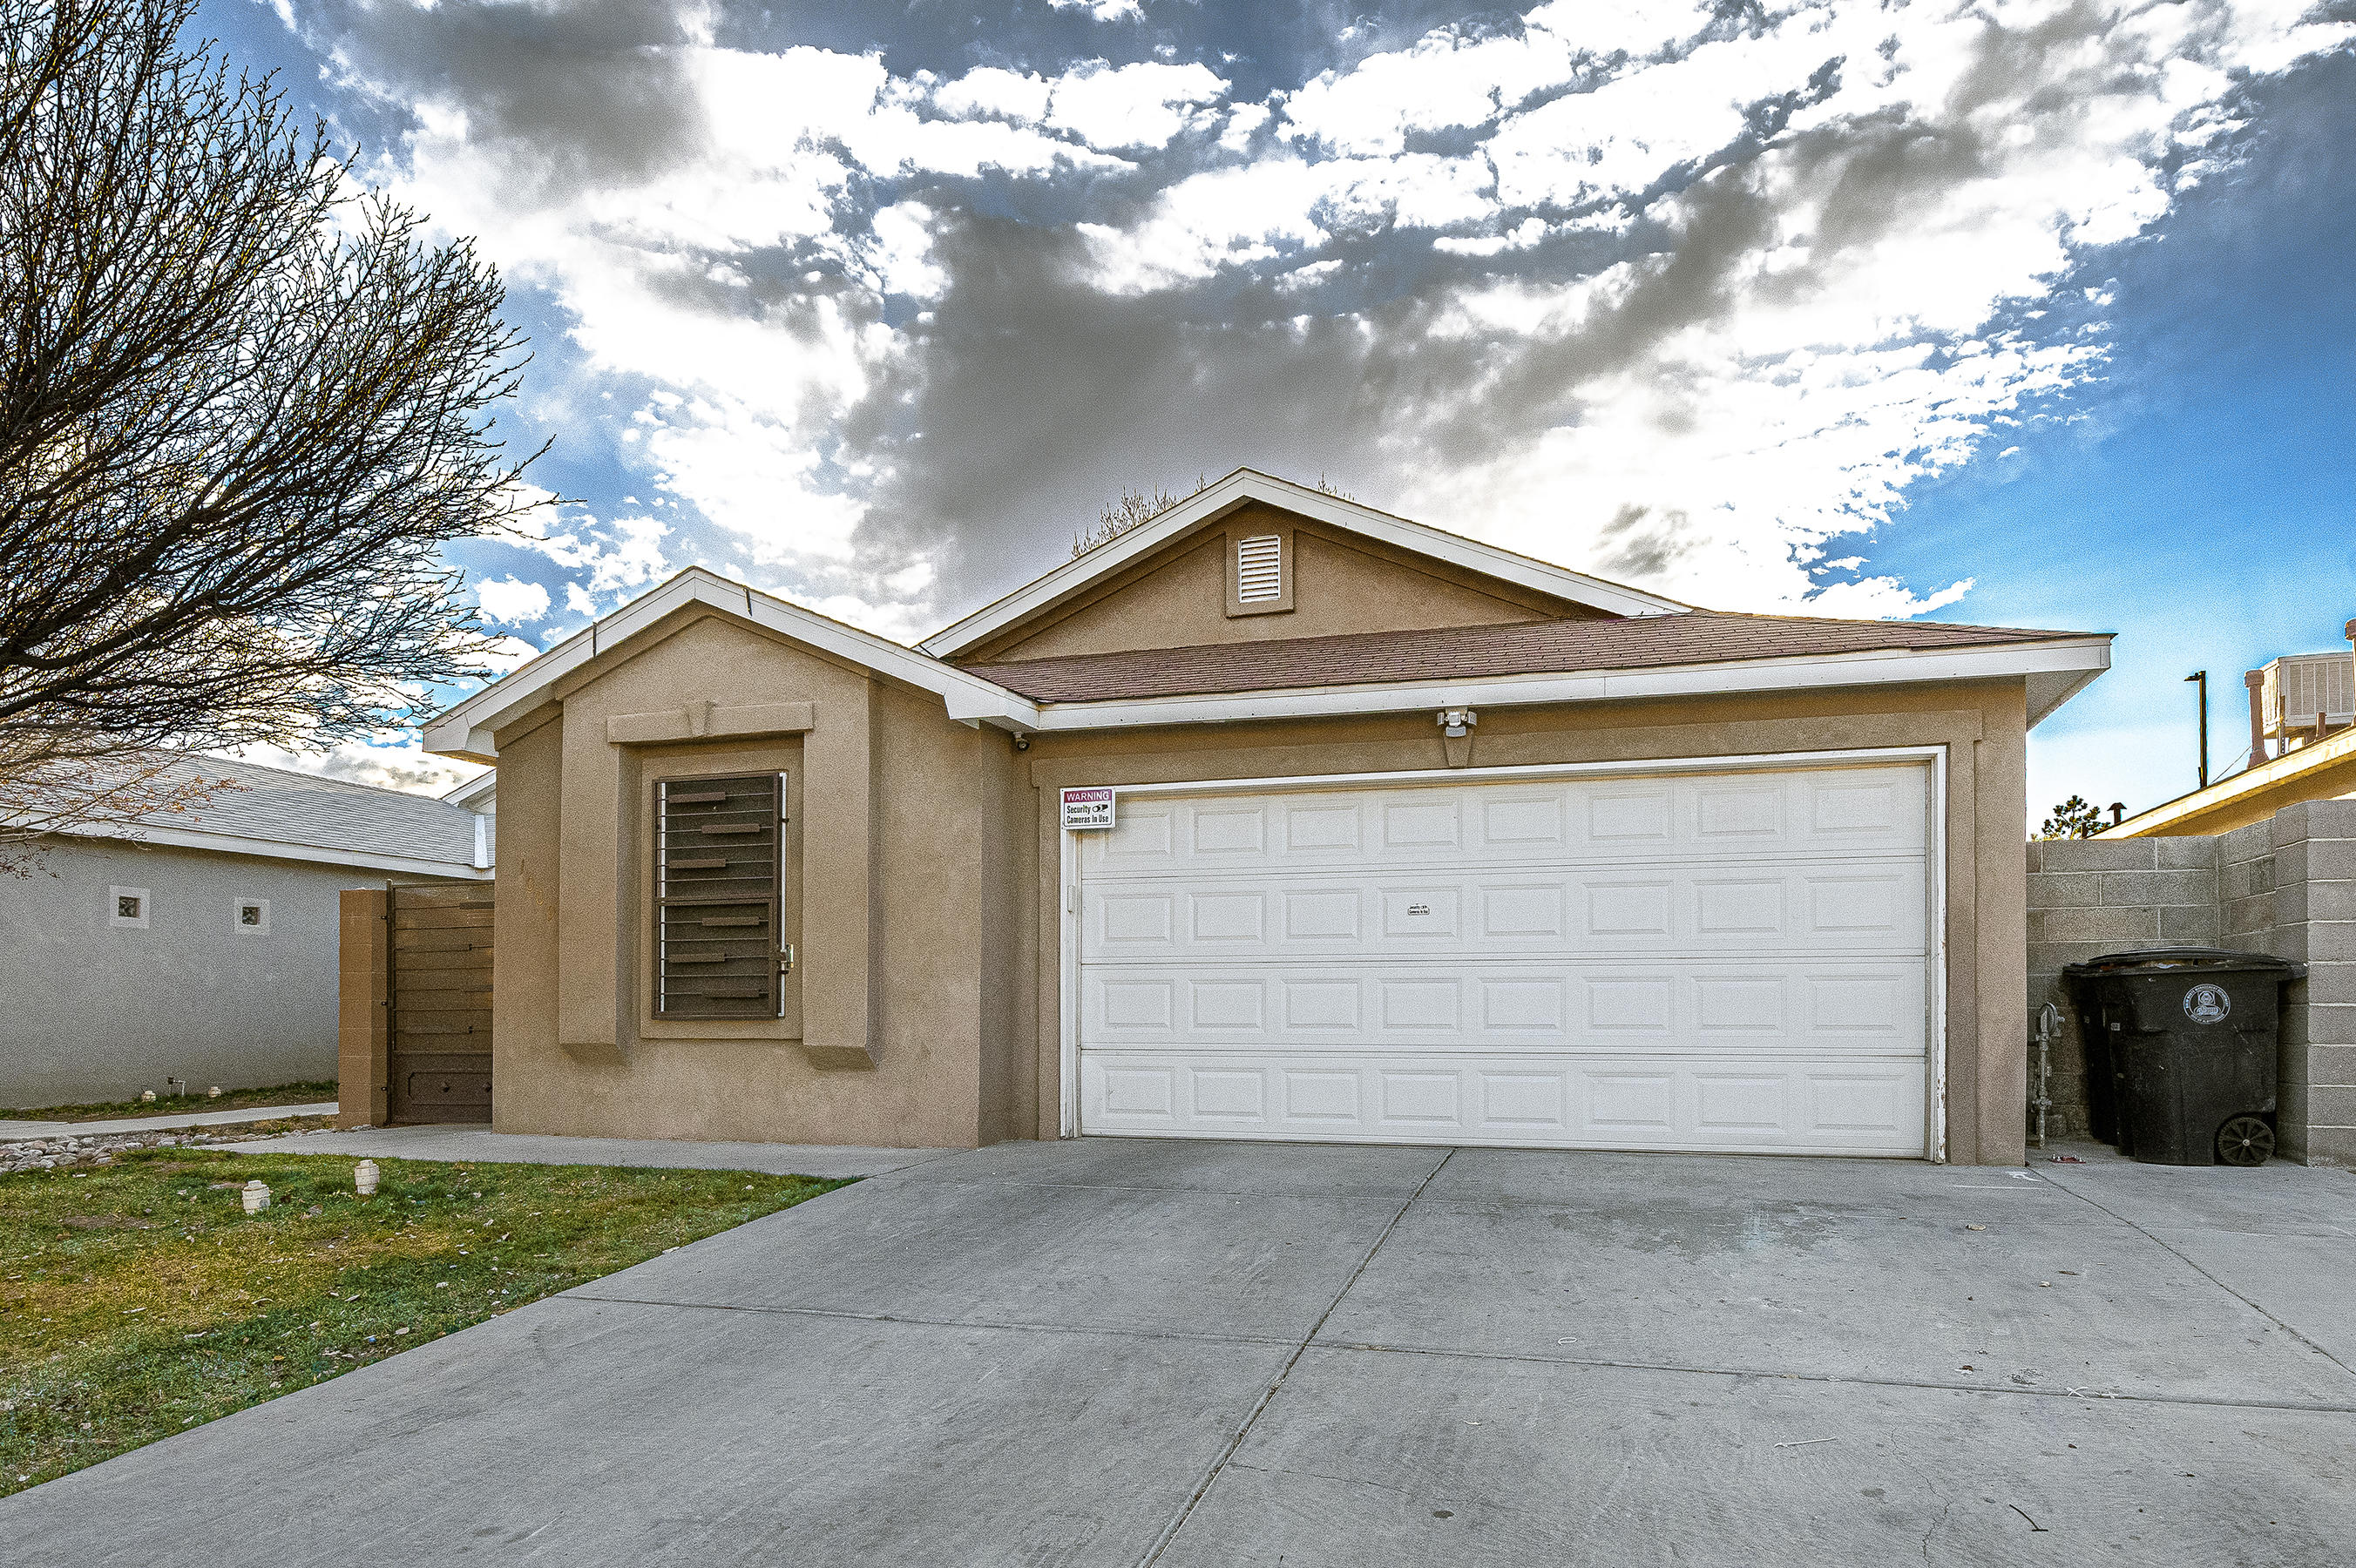 Move in ready!! Updated  and well maintained 4 Bedroom home, 2 full baths! Conveniently located near I-40 and Coors Blvd. Home features nice open floor plan, tile floors, updated kitchen cabinets with quartz countertop, sprinkler system in front yard,  video security system. Don't miss this one!